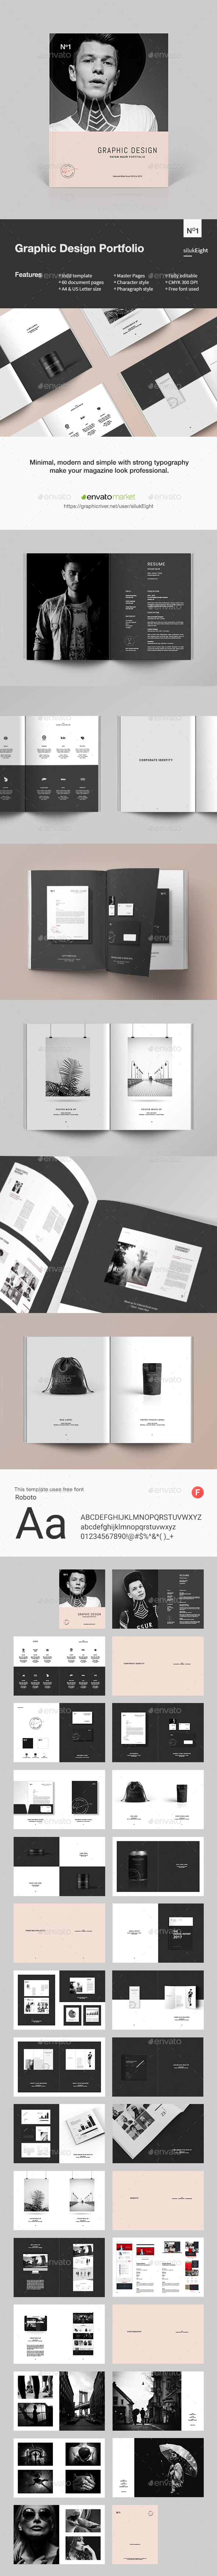 Graphic Design Portfolio - Portfolio Brochures